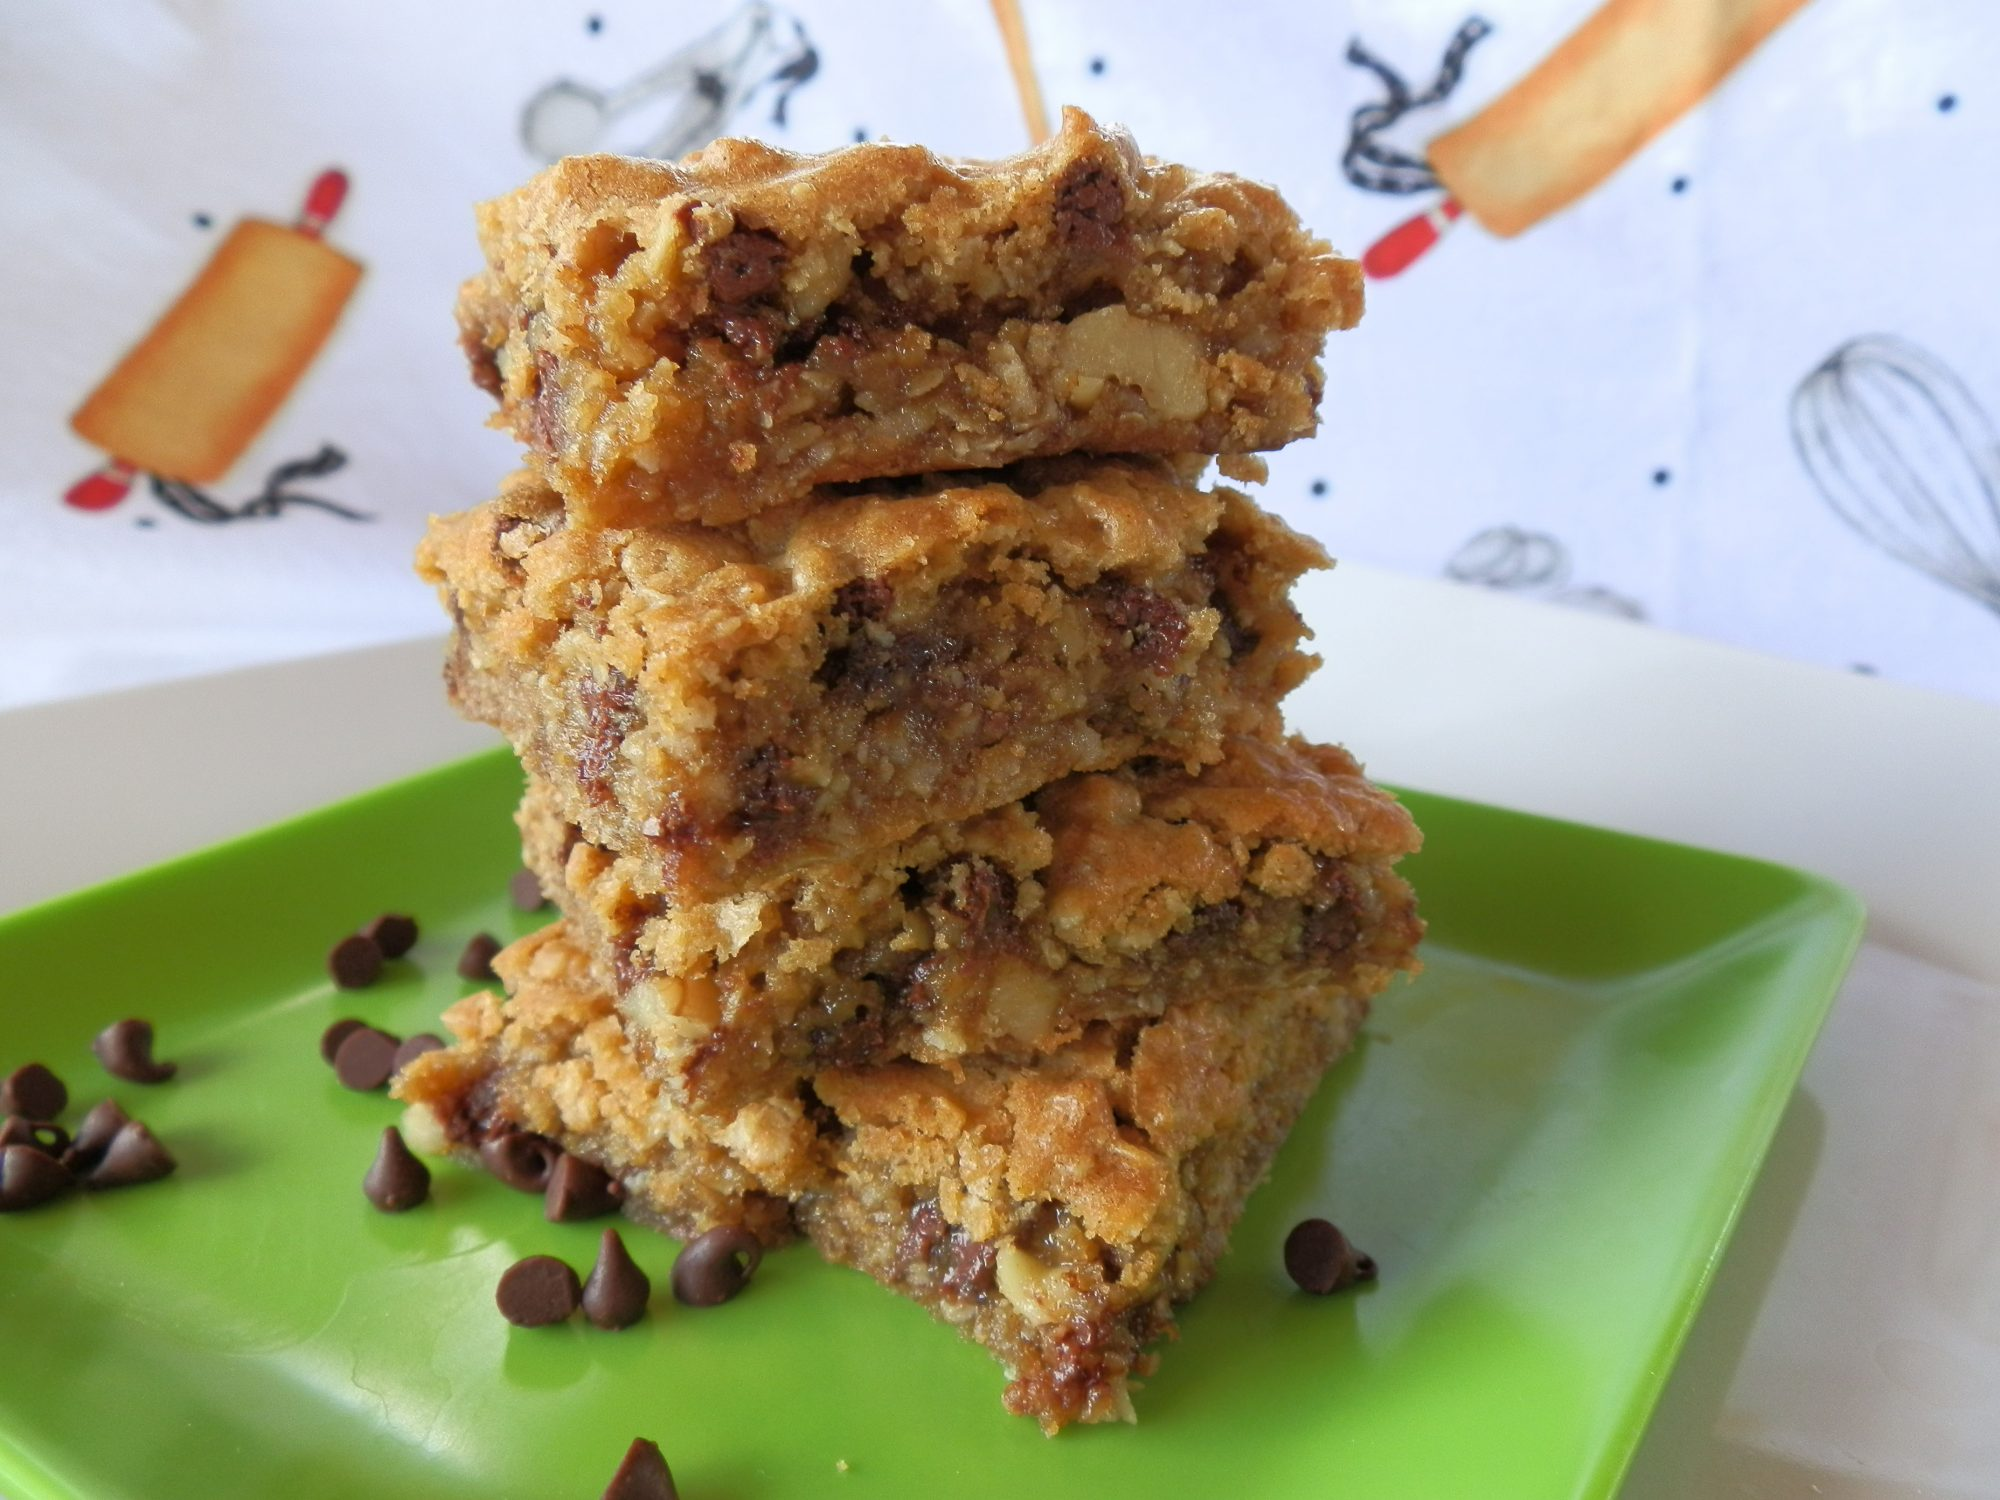 A stack of four blondies on a green square plate with scattered mini chocolate chips